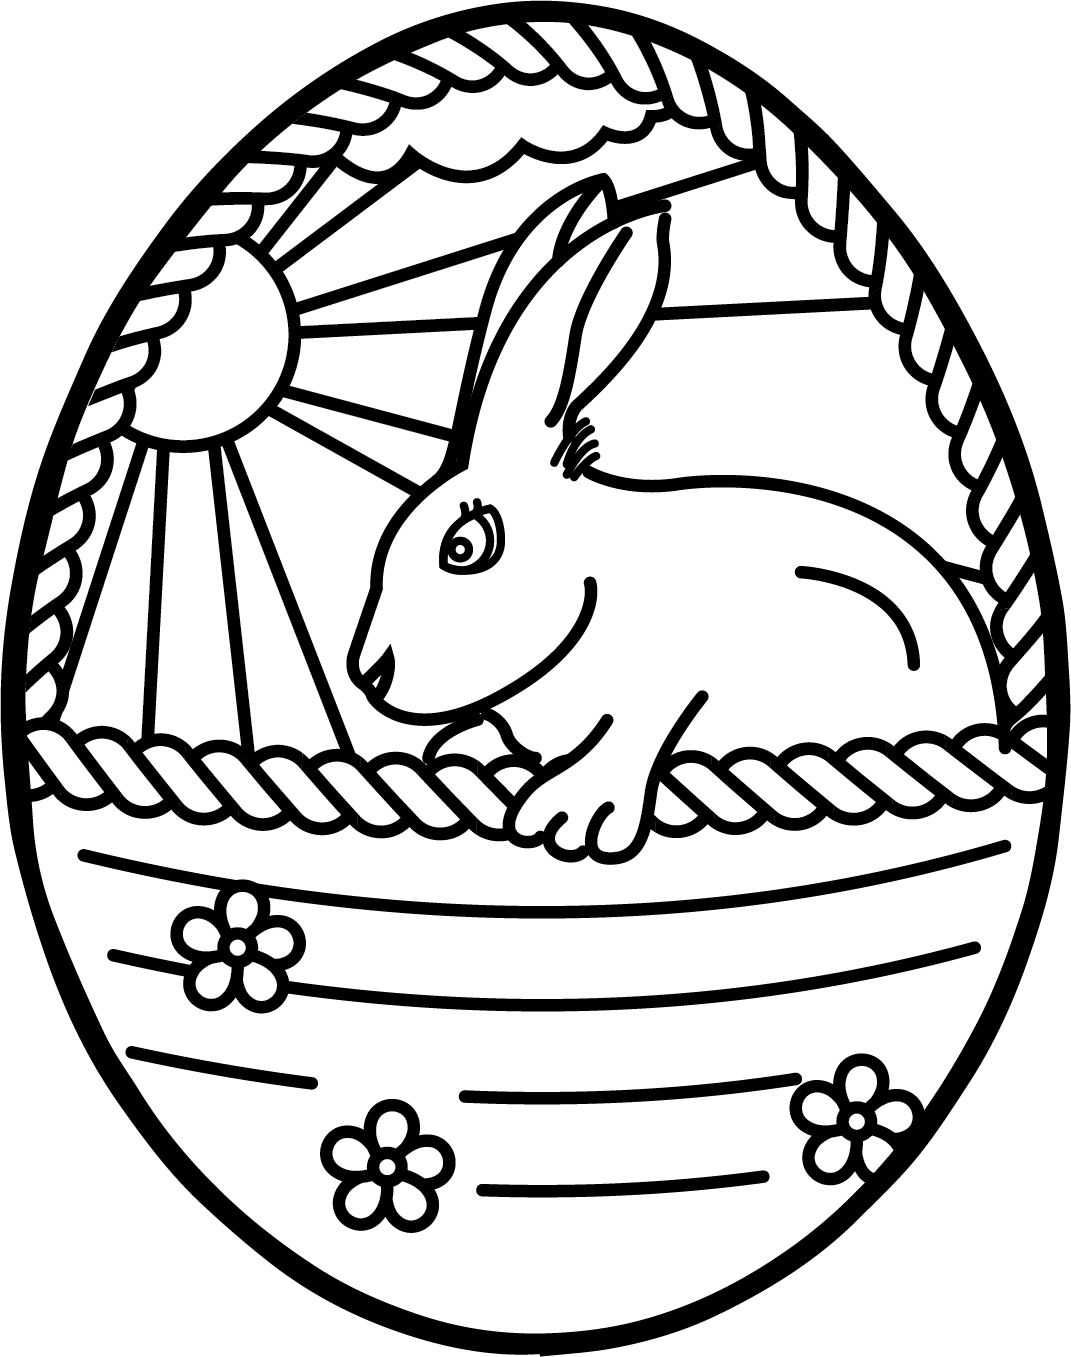 easter egg coloring pictures easter egg coloring pages to download and print for free pictures easter coloring egg